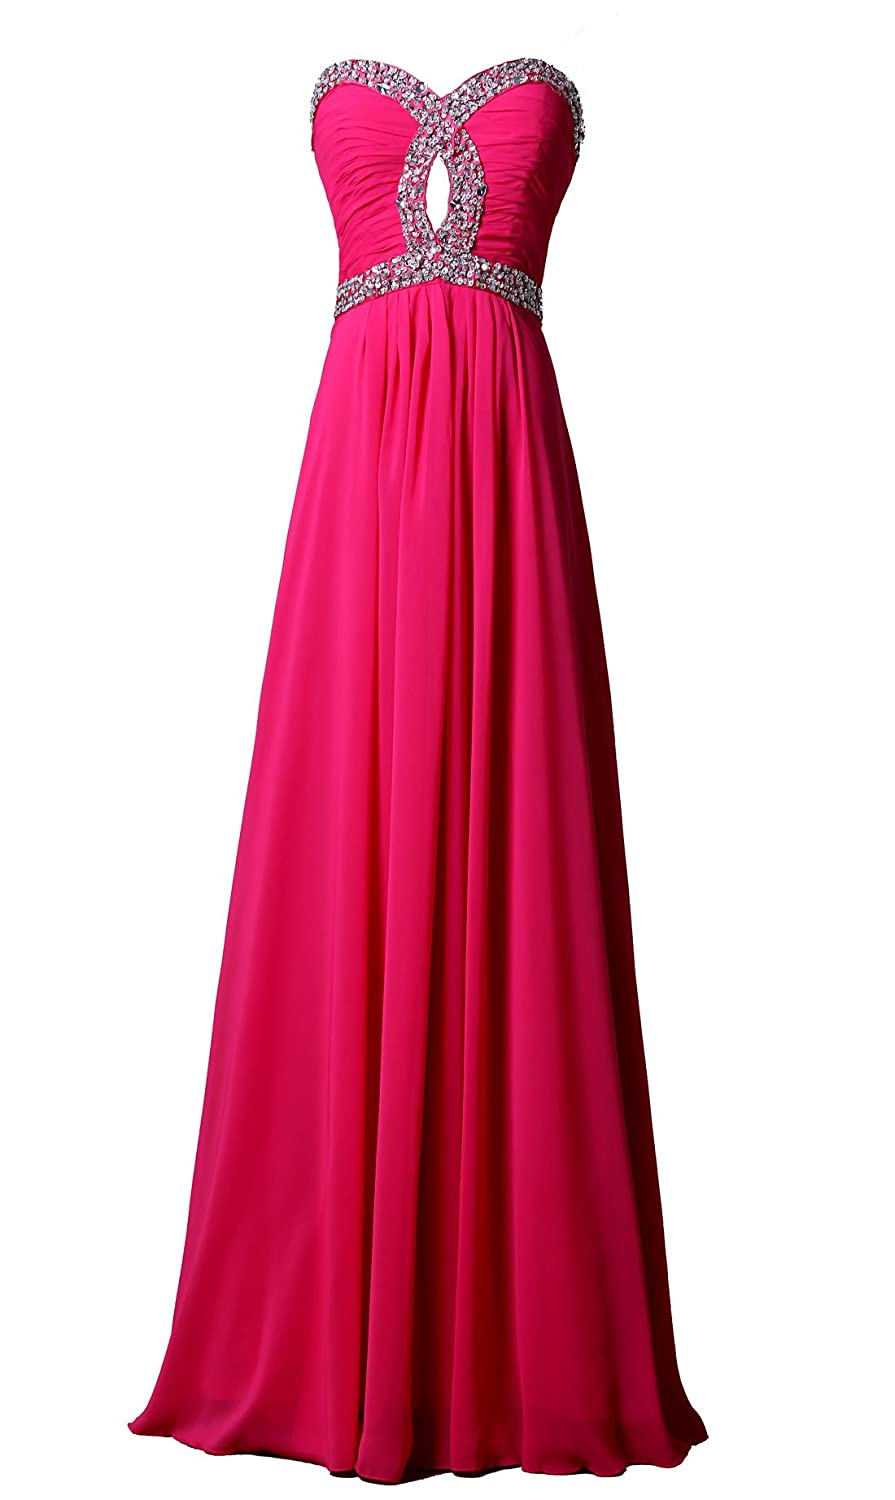 Mkleids Women's Lace Up Beaded Sequined Chiffon Evening Dresses Floor-Length